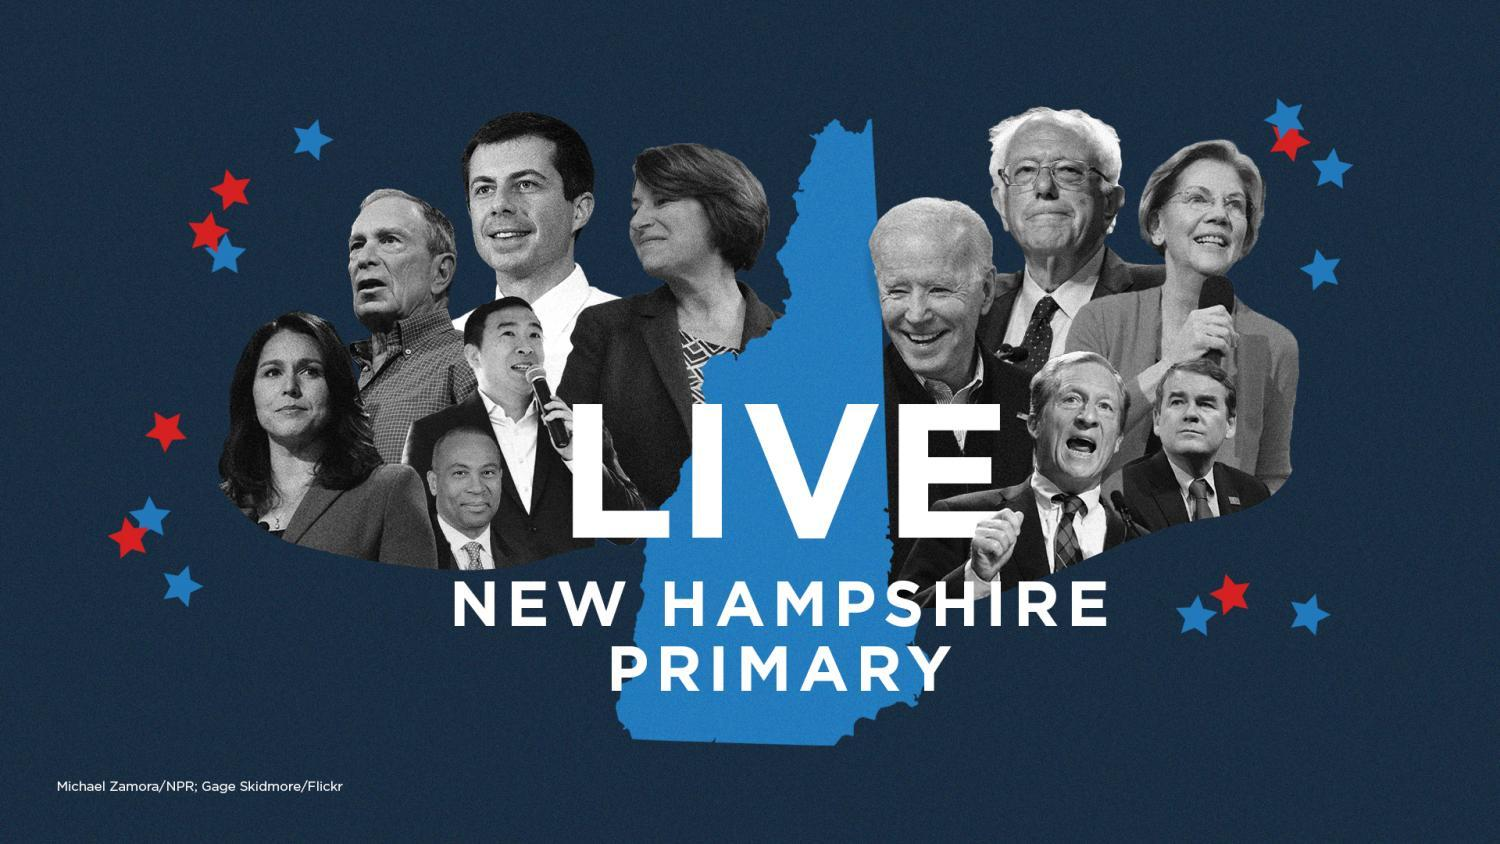 new Hampshire primary collage of candidates